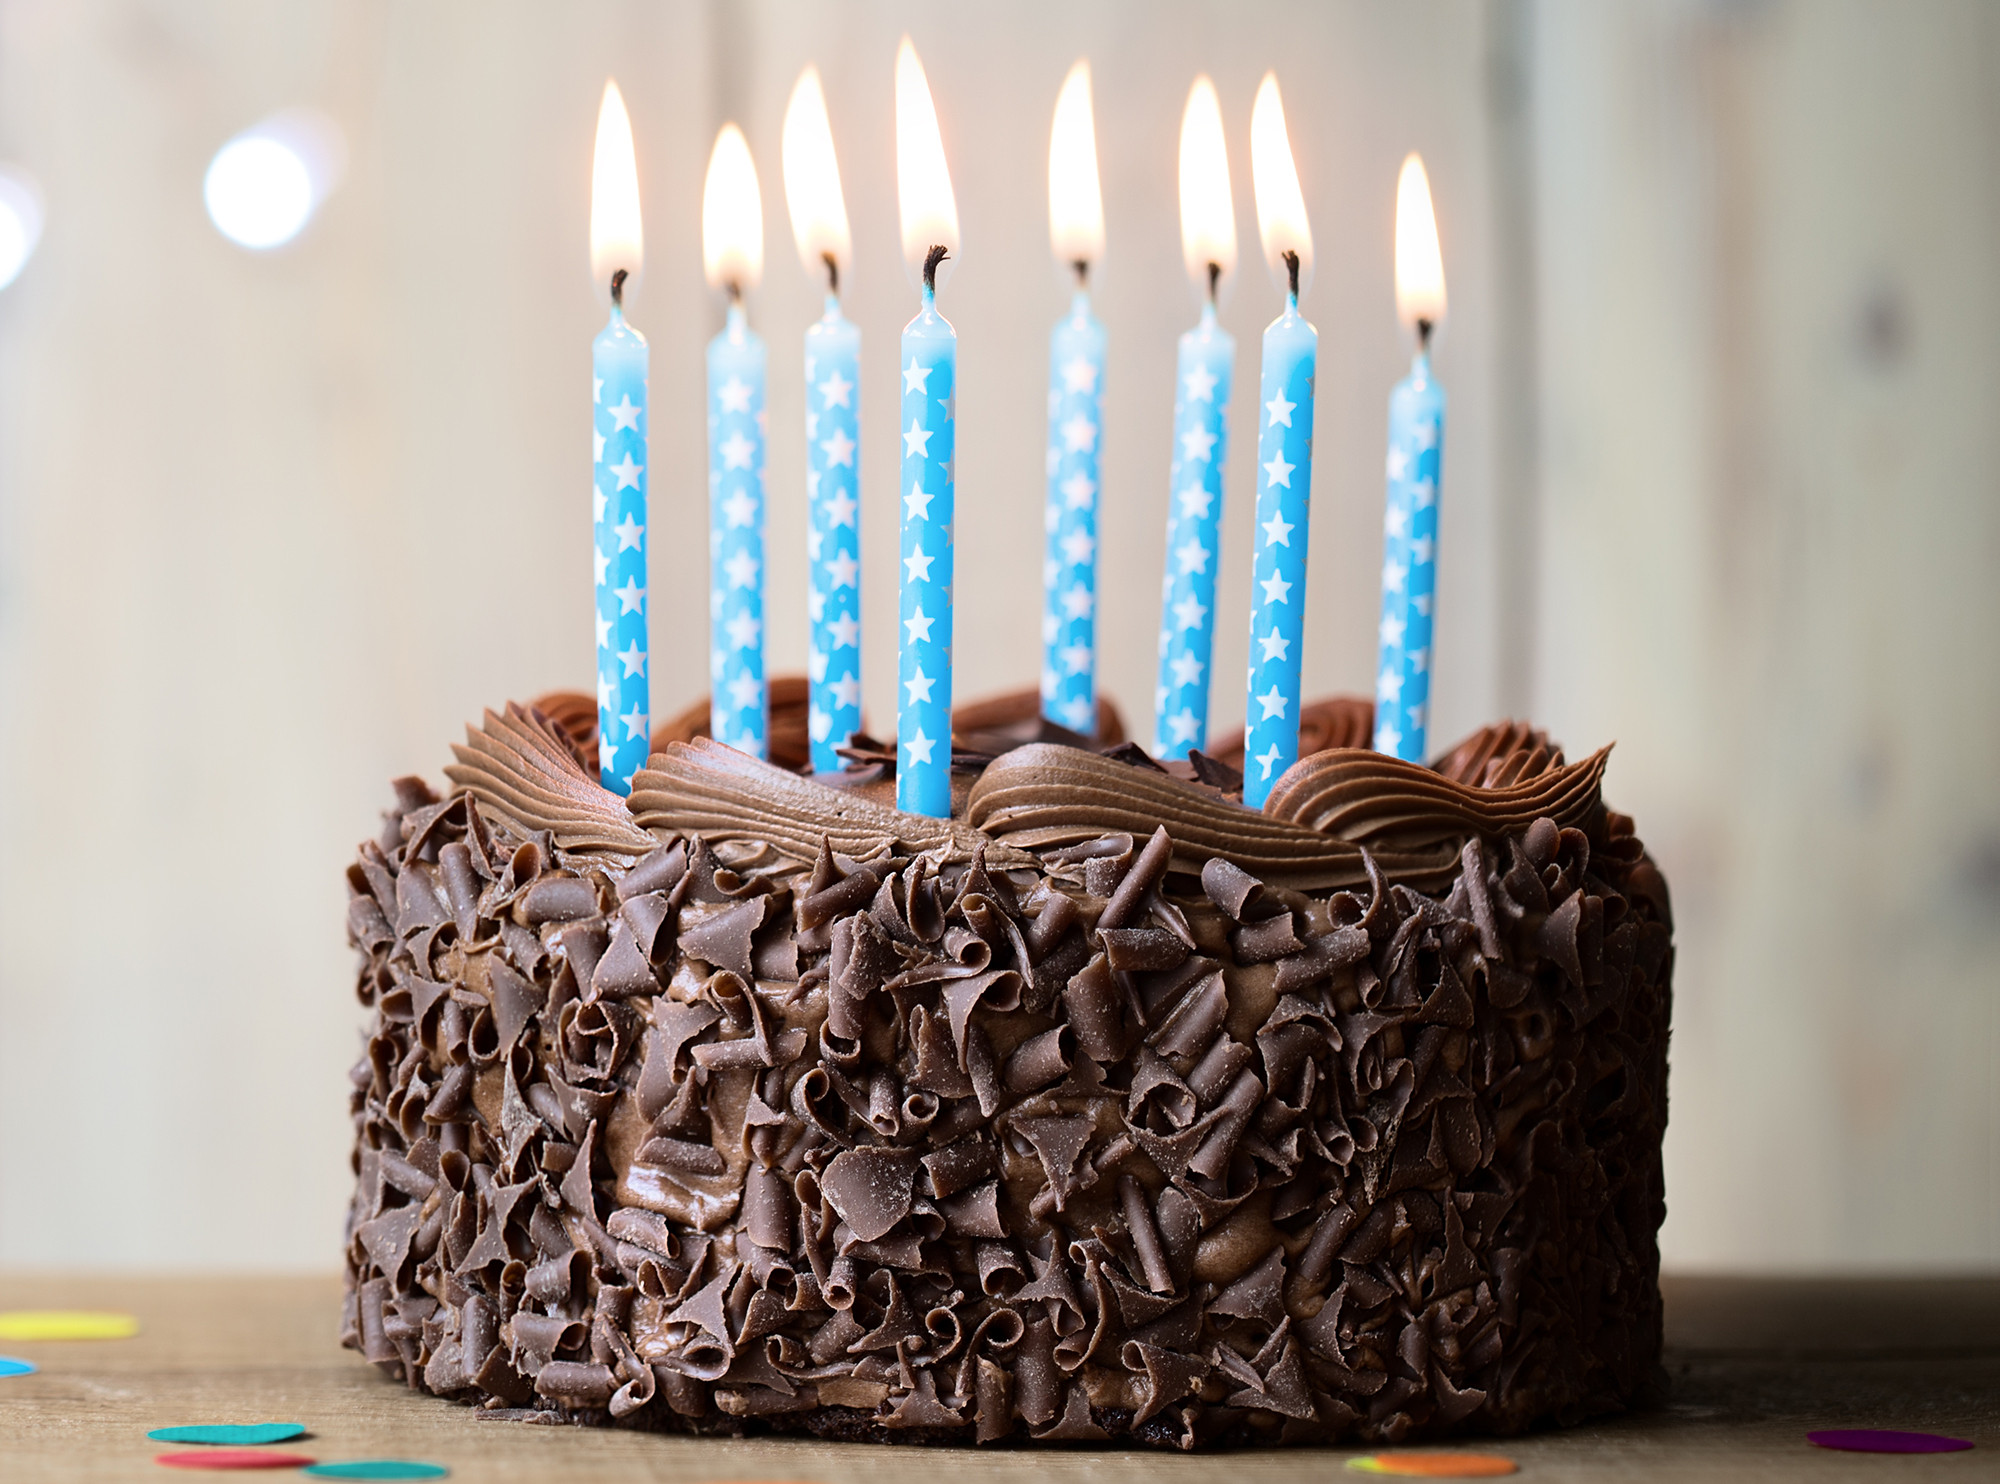 Best ideas about Birthday Cake Images For Man . Save or Pin This Man Scored Nearly $100 of Free Stuff on his Birthday Now.